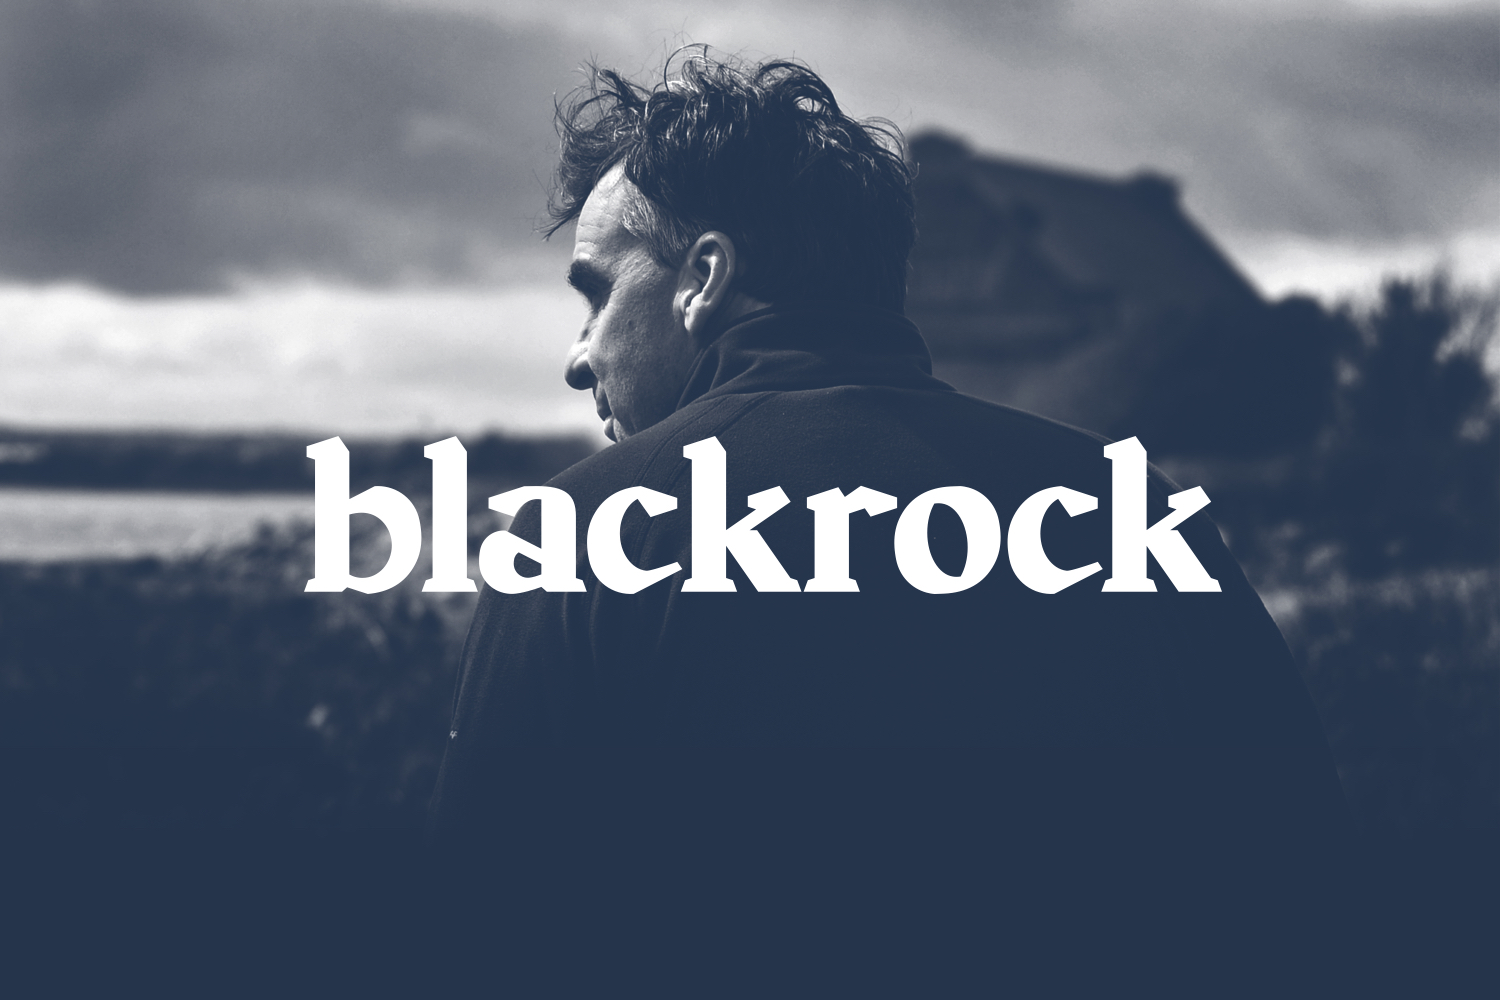 Cover image: Blackrock